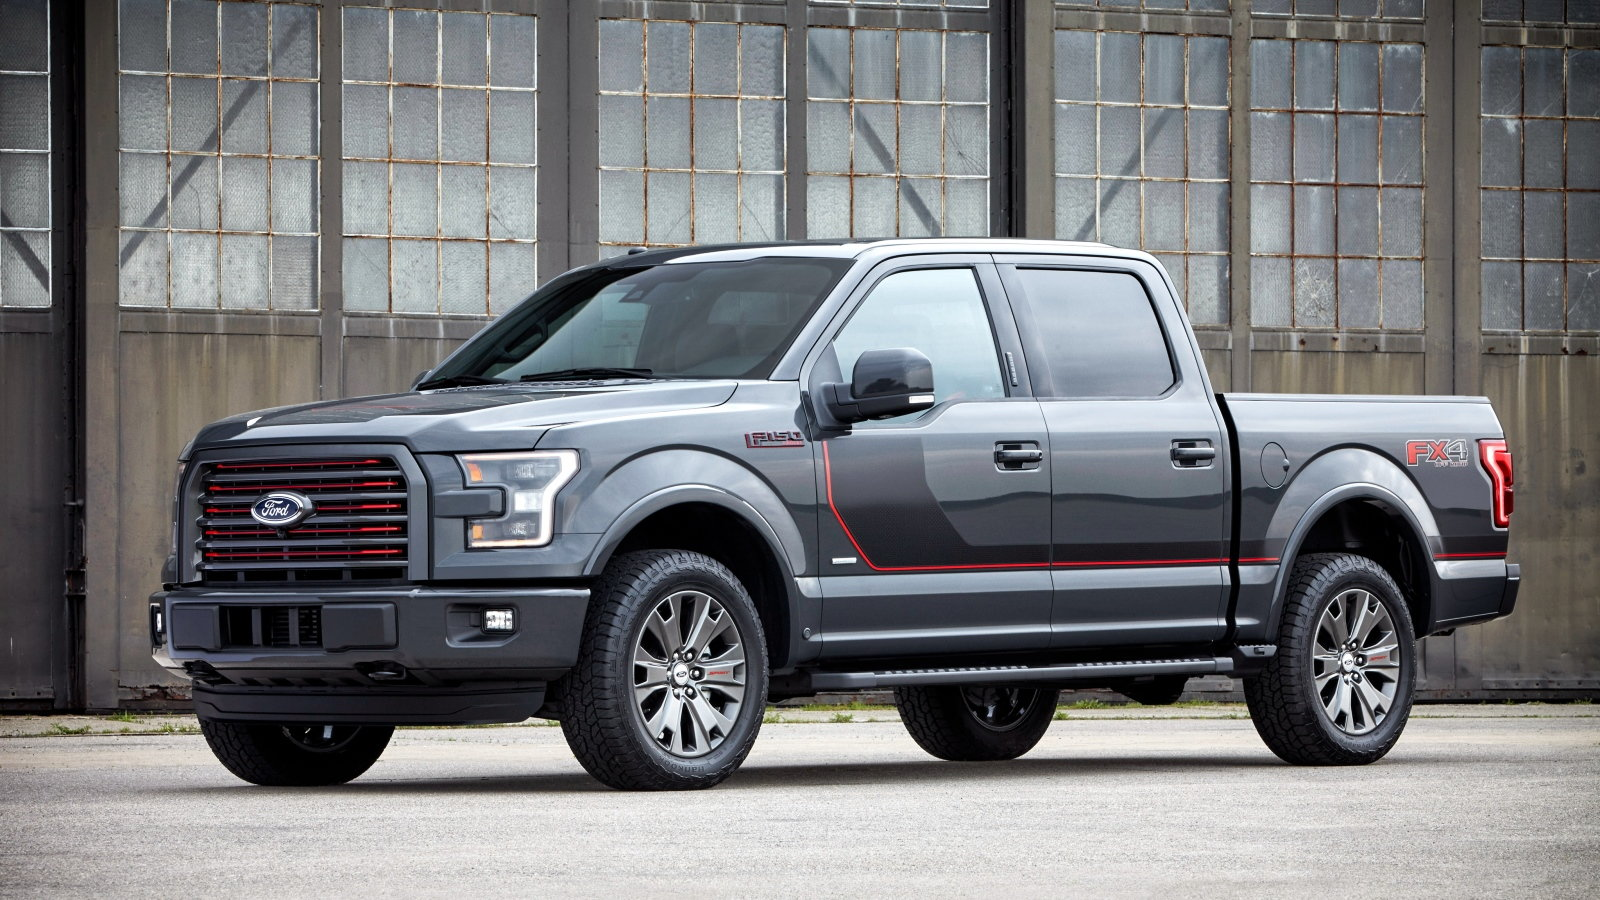 2016 Ford F-150 with Special Edition Appearance Package